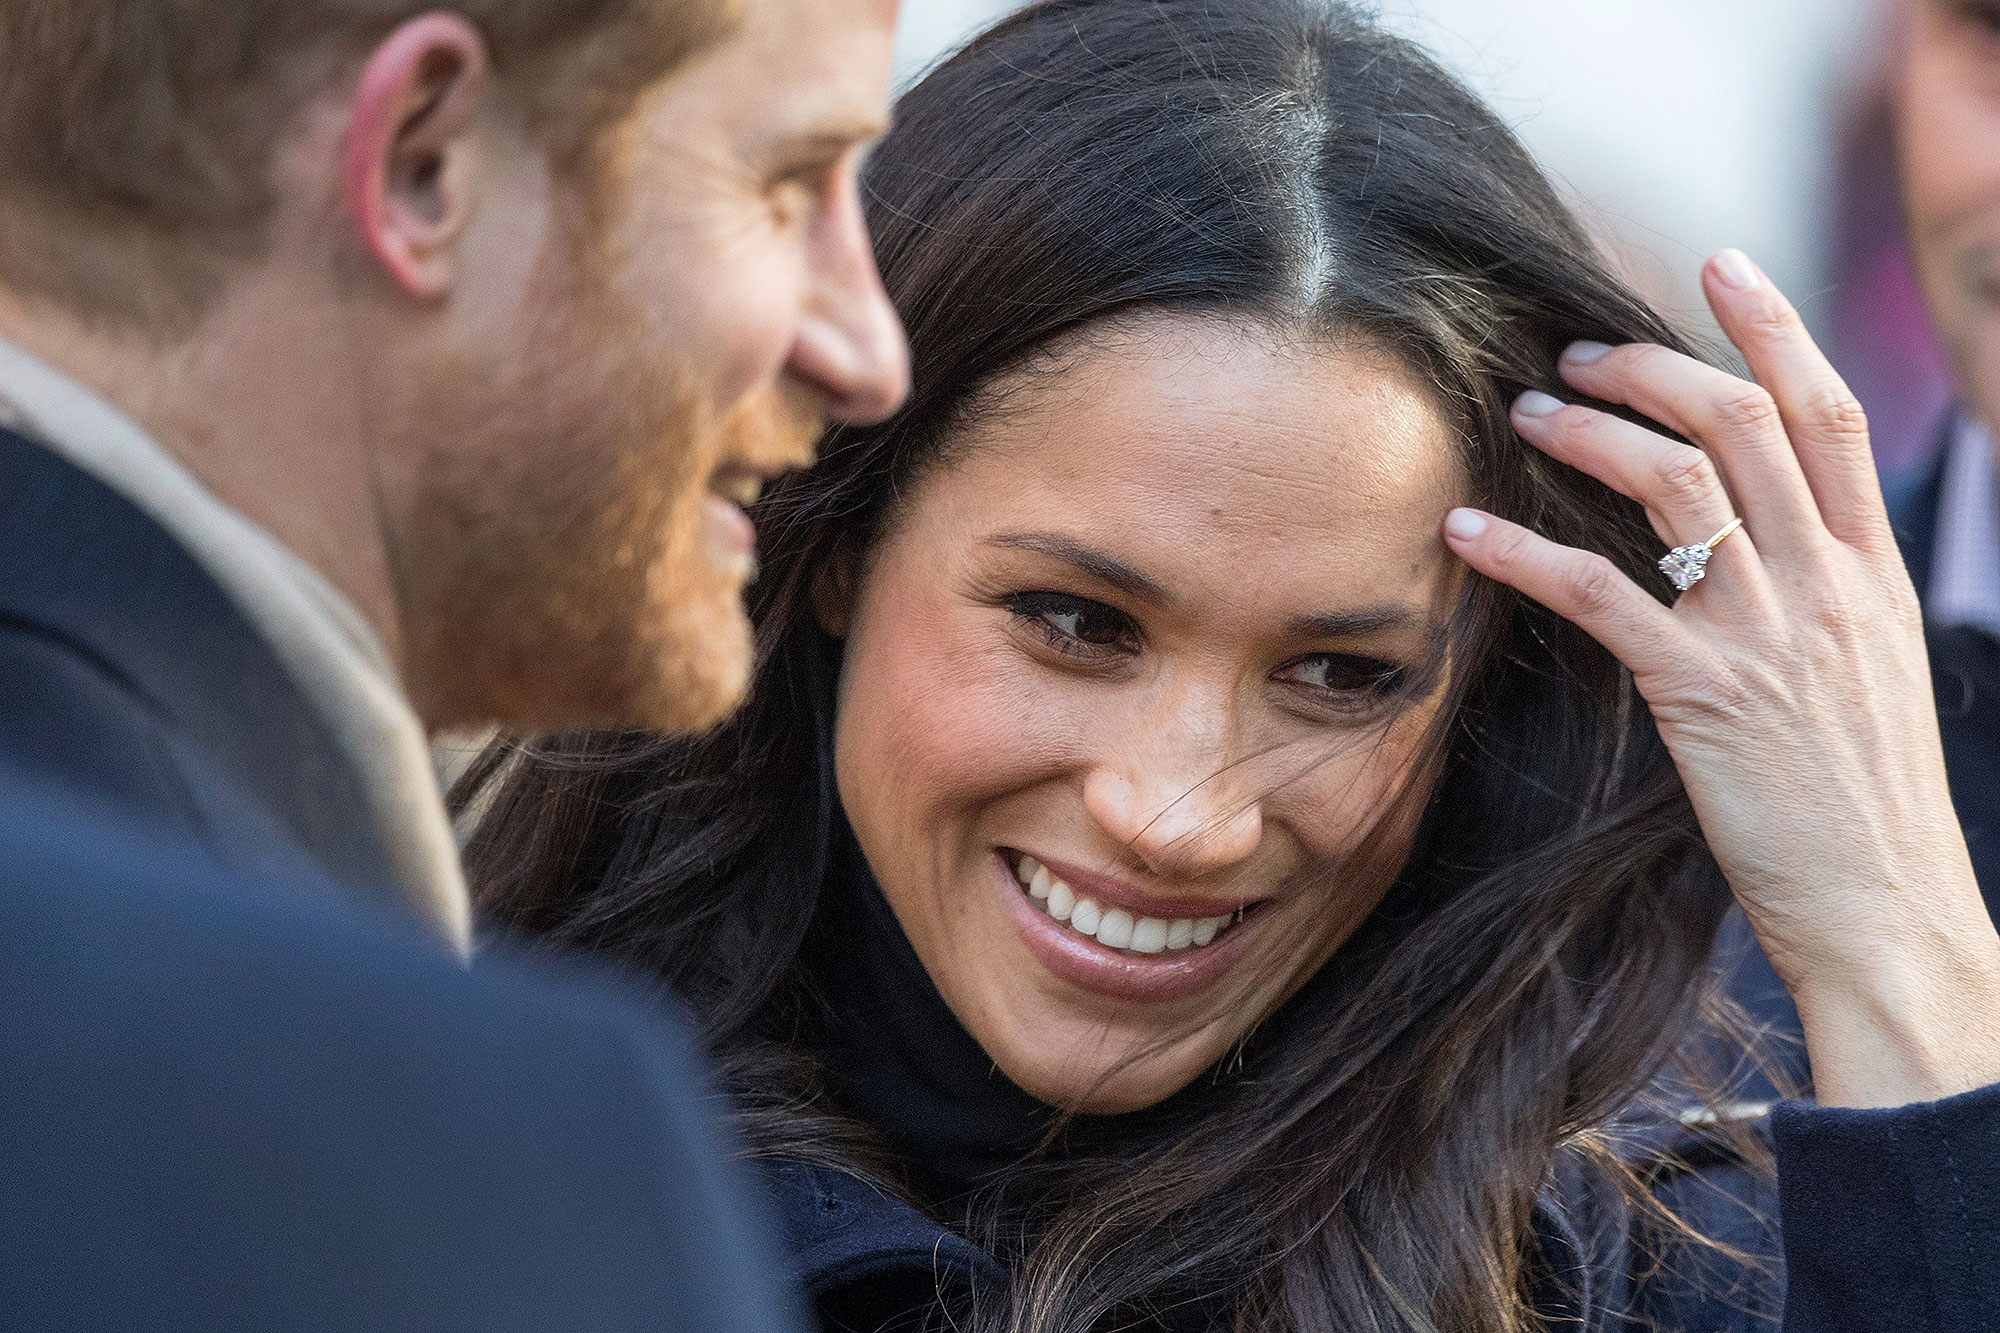 royal jewelers refuse to make replicas of meghan markle s ring people com royal jewelers refuse to make replicas of meghan markle s ring people com